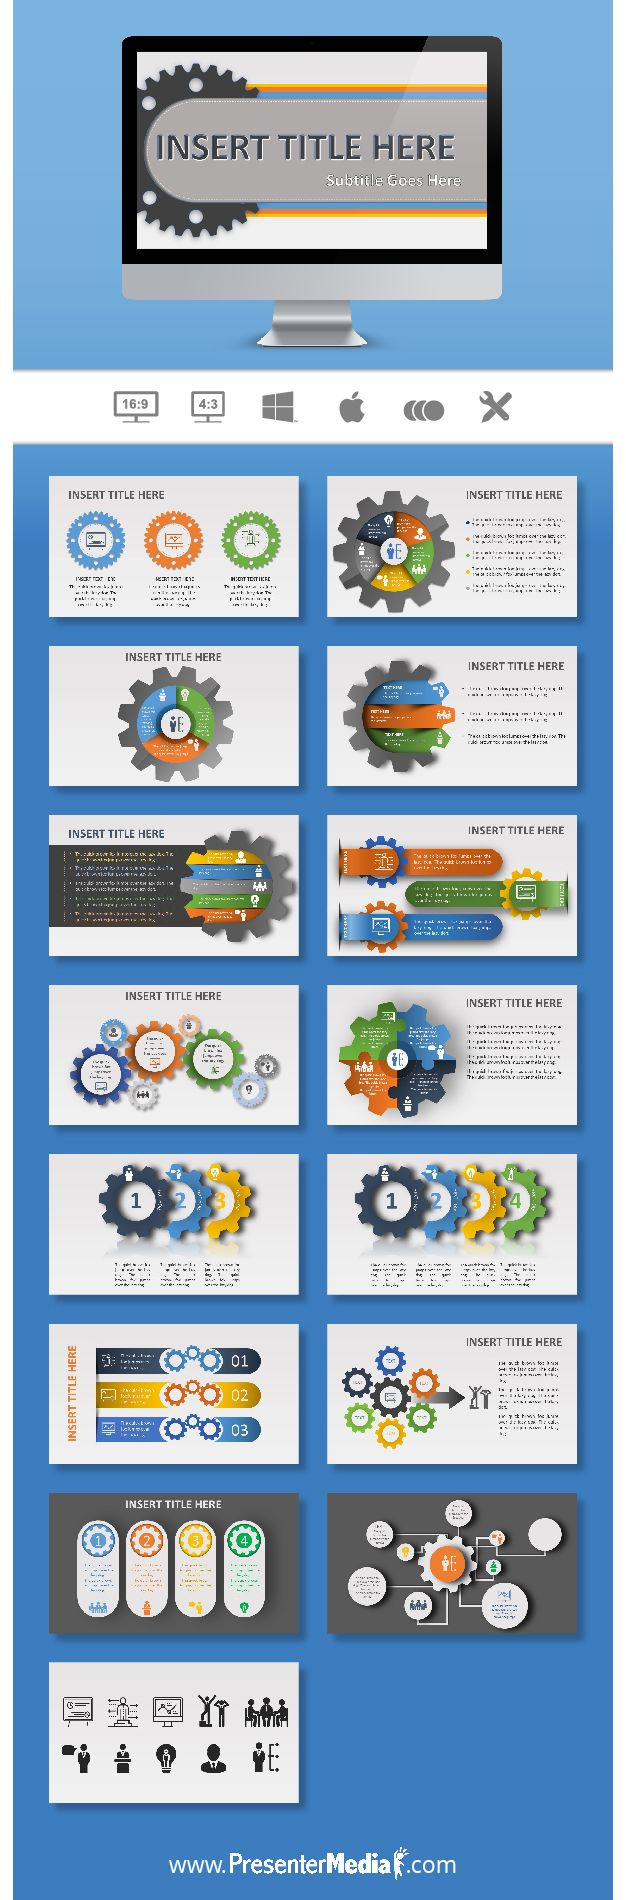 Get the gears spinning with this new presntation toolkit. Use it for your class or for a business presntation. #infographics #presentations #powerpoint http://bit.ly/2erYVQc